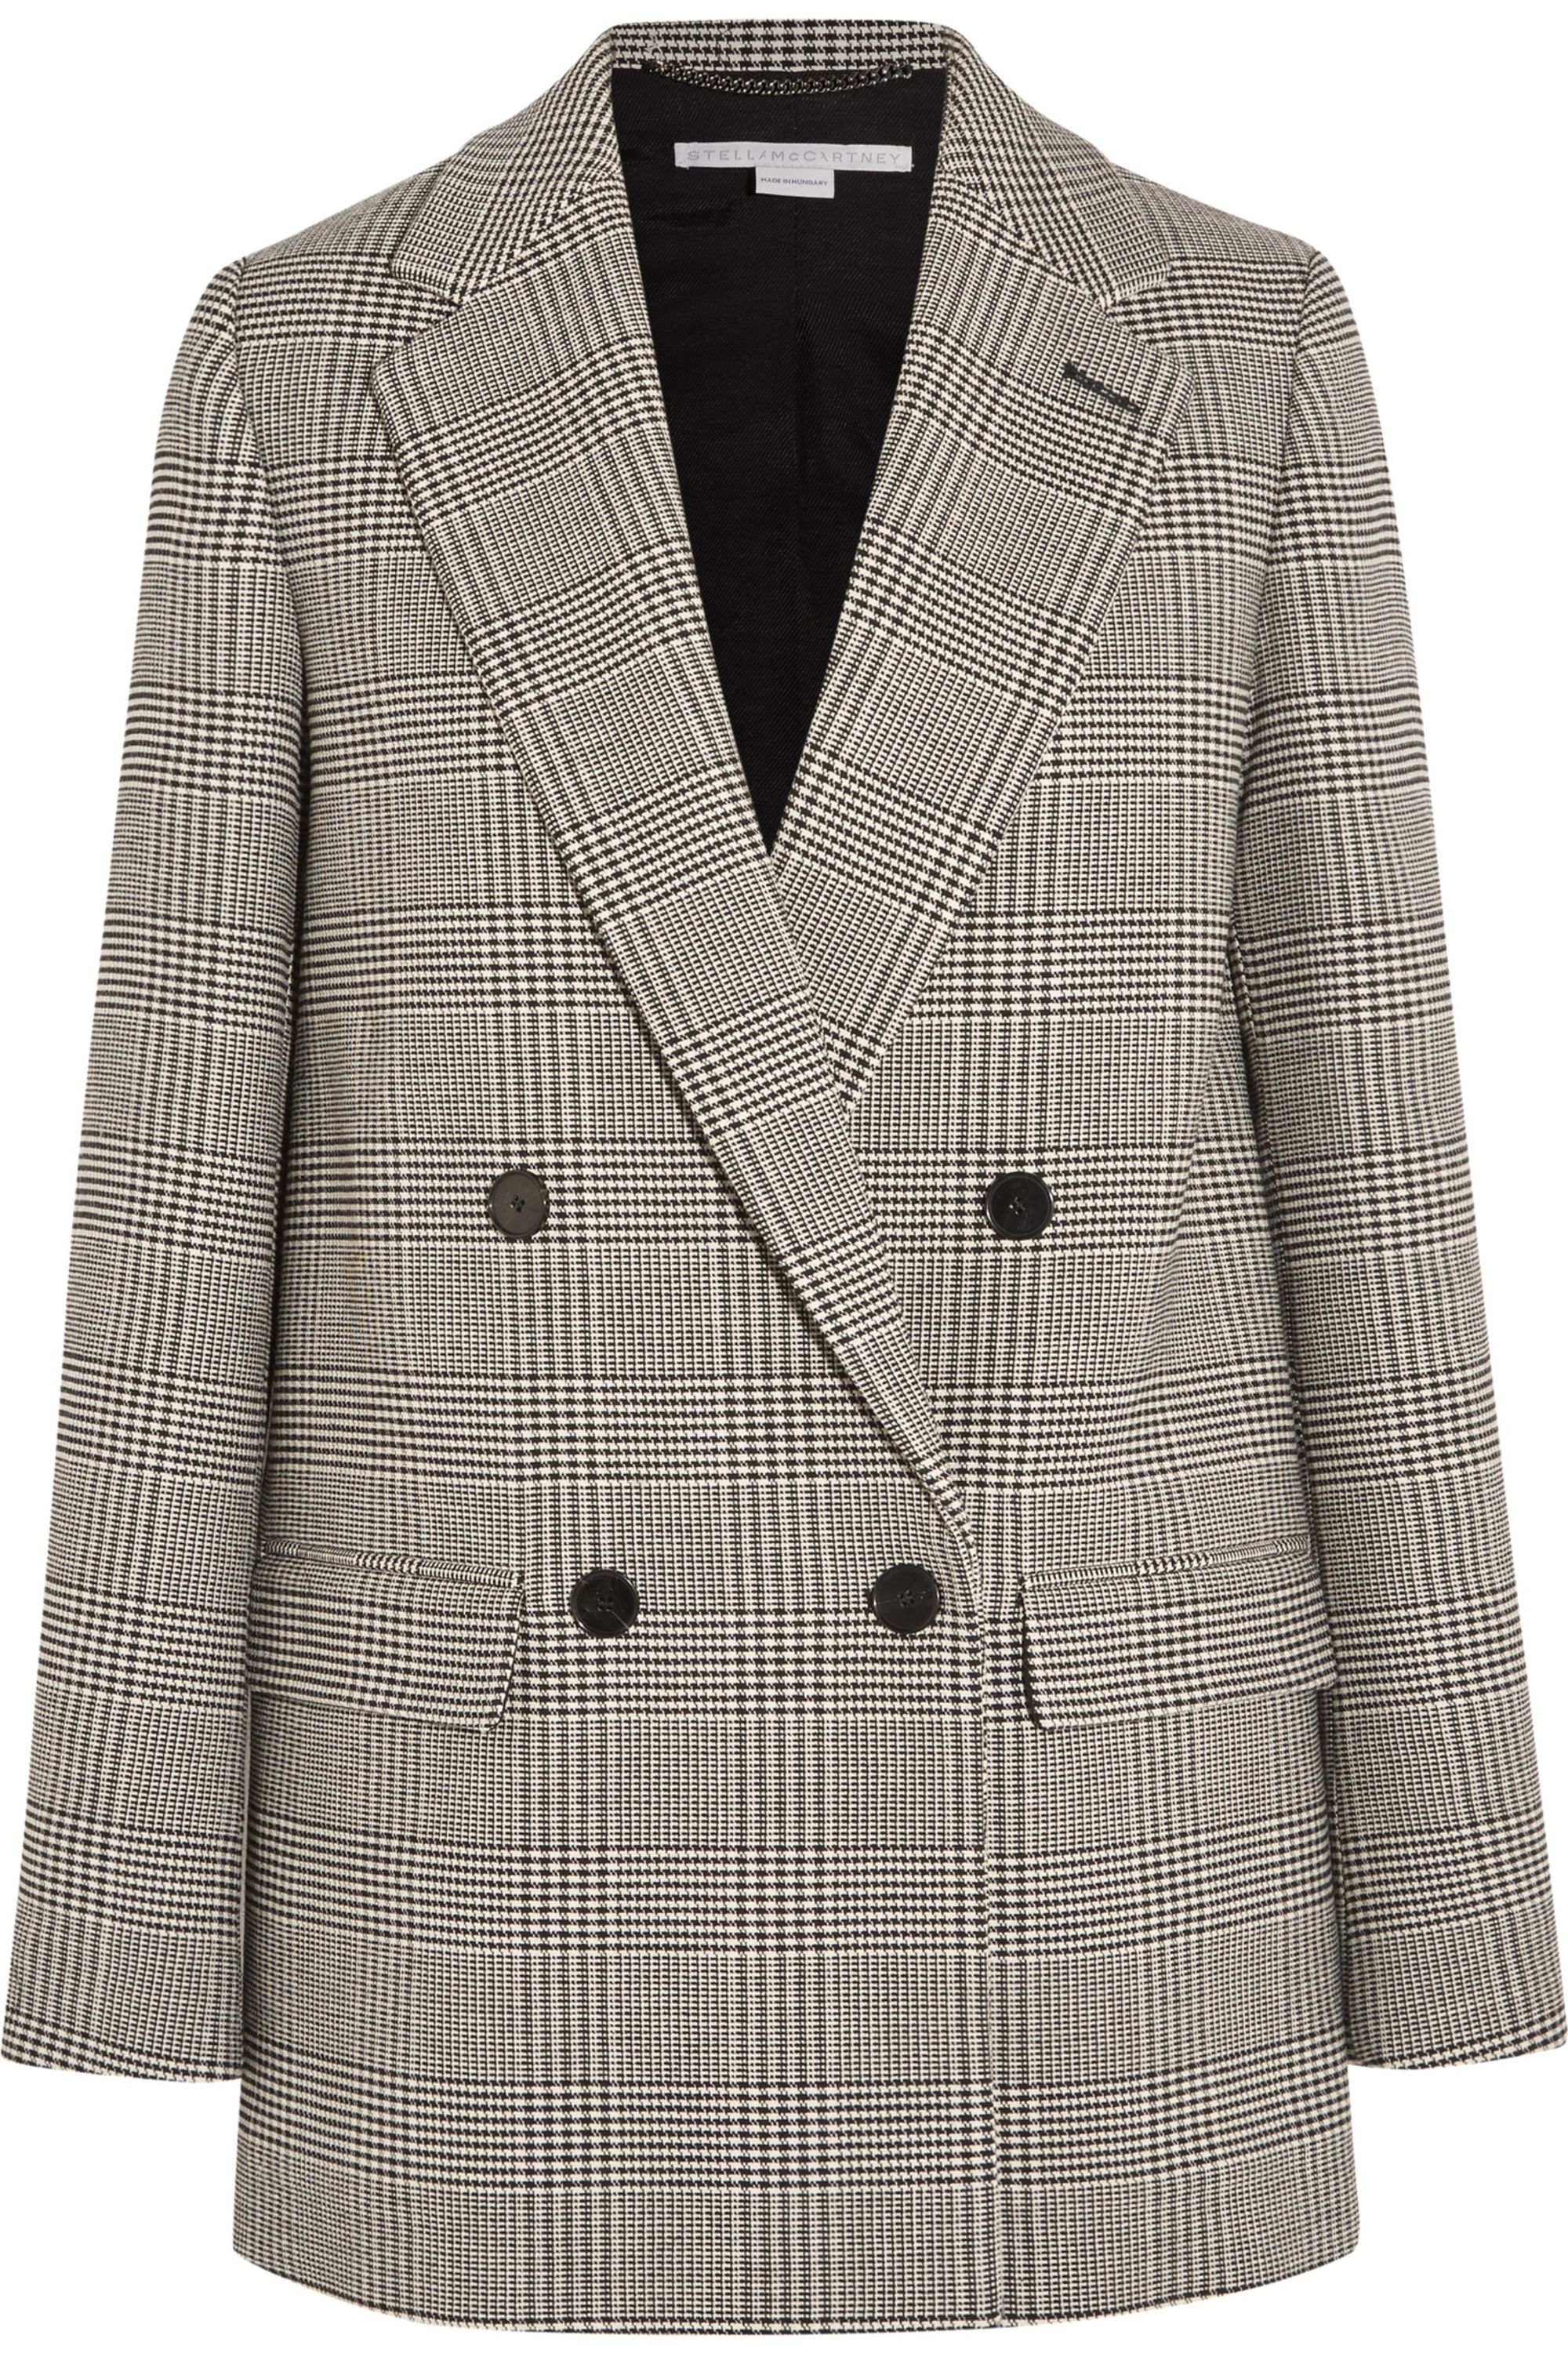 Stella McCartney Milly Prince of Wales checked wool-blend blazer